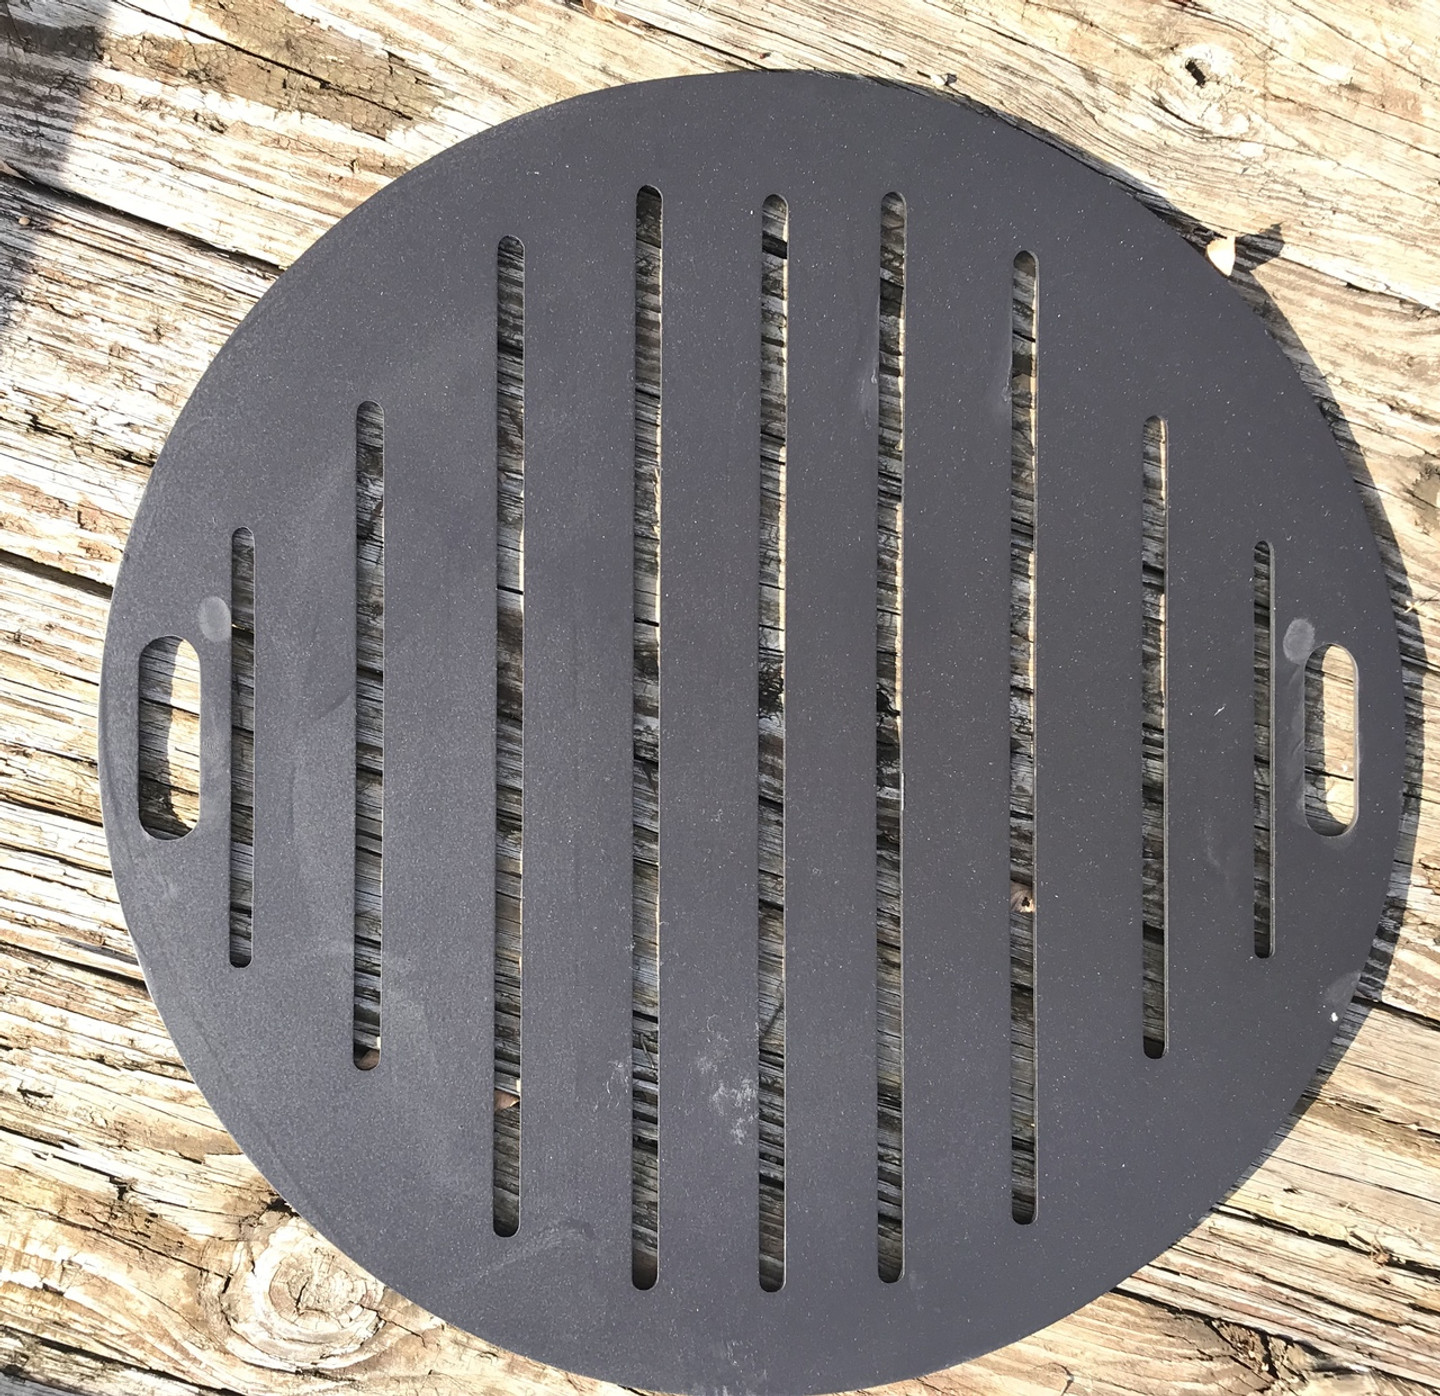 Grate - for wood burning fire pit (not to be used for cooking)